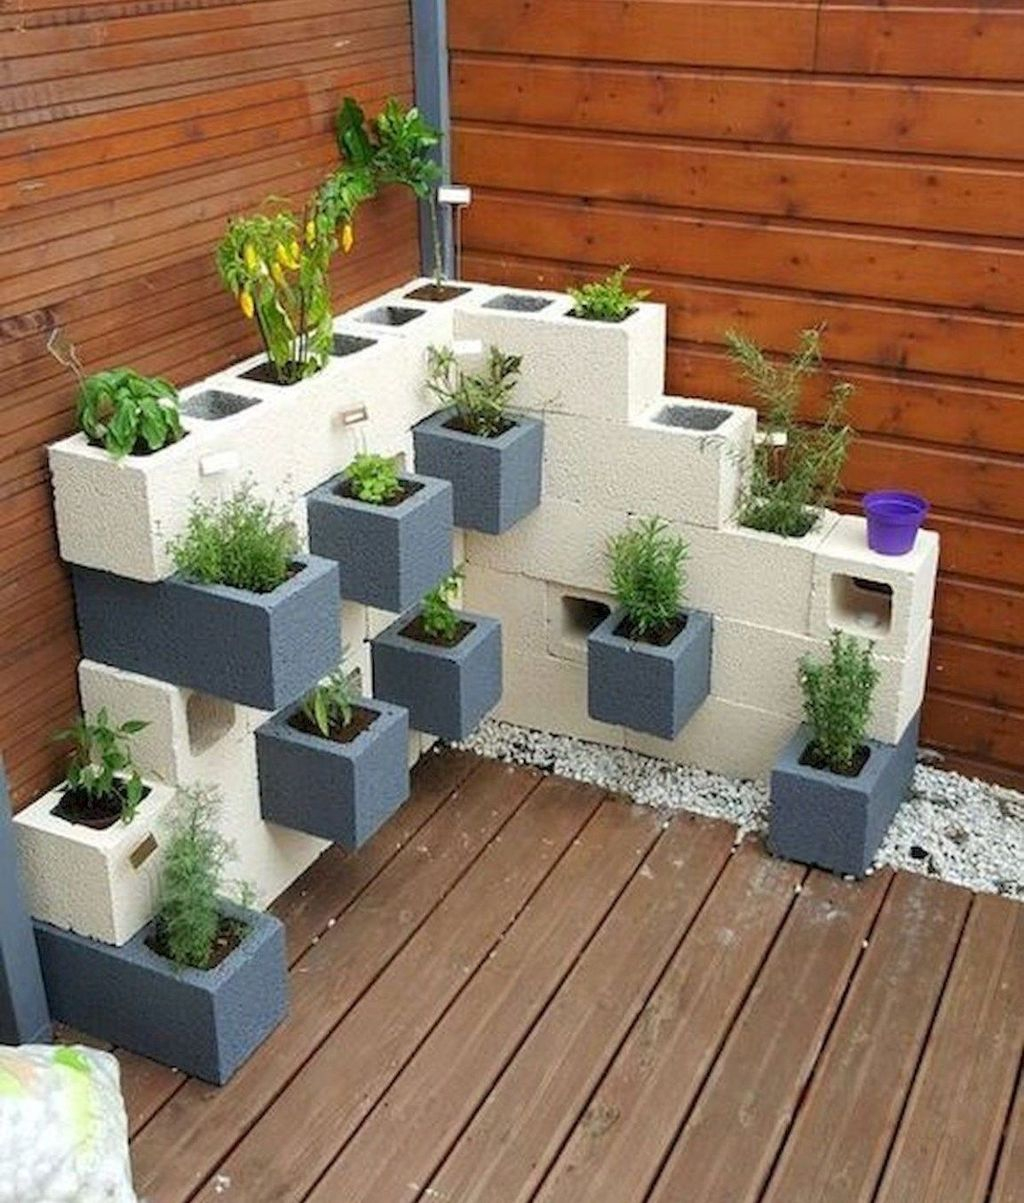 Stylish Garden Design Ideas With Cinder Block To Try 02